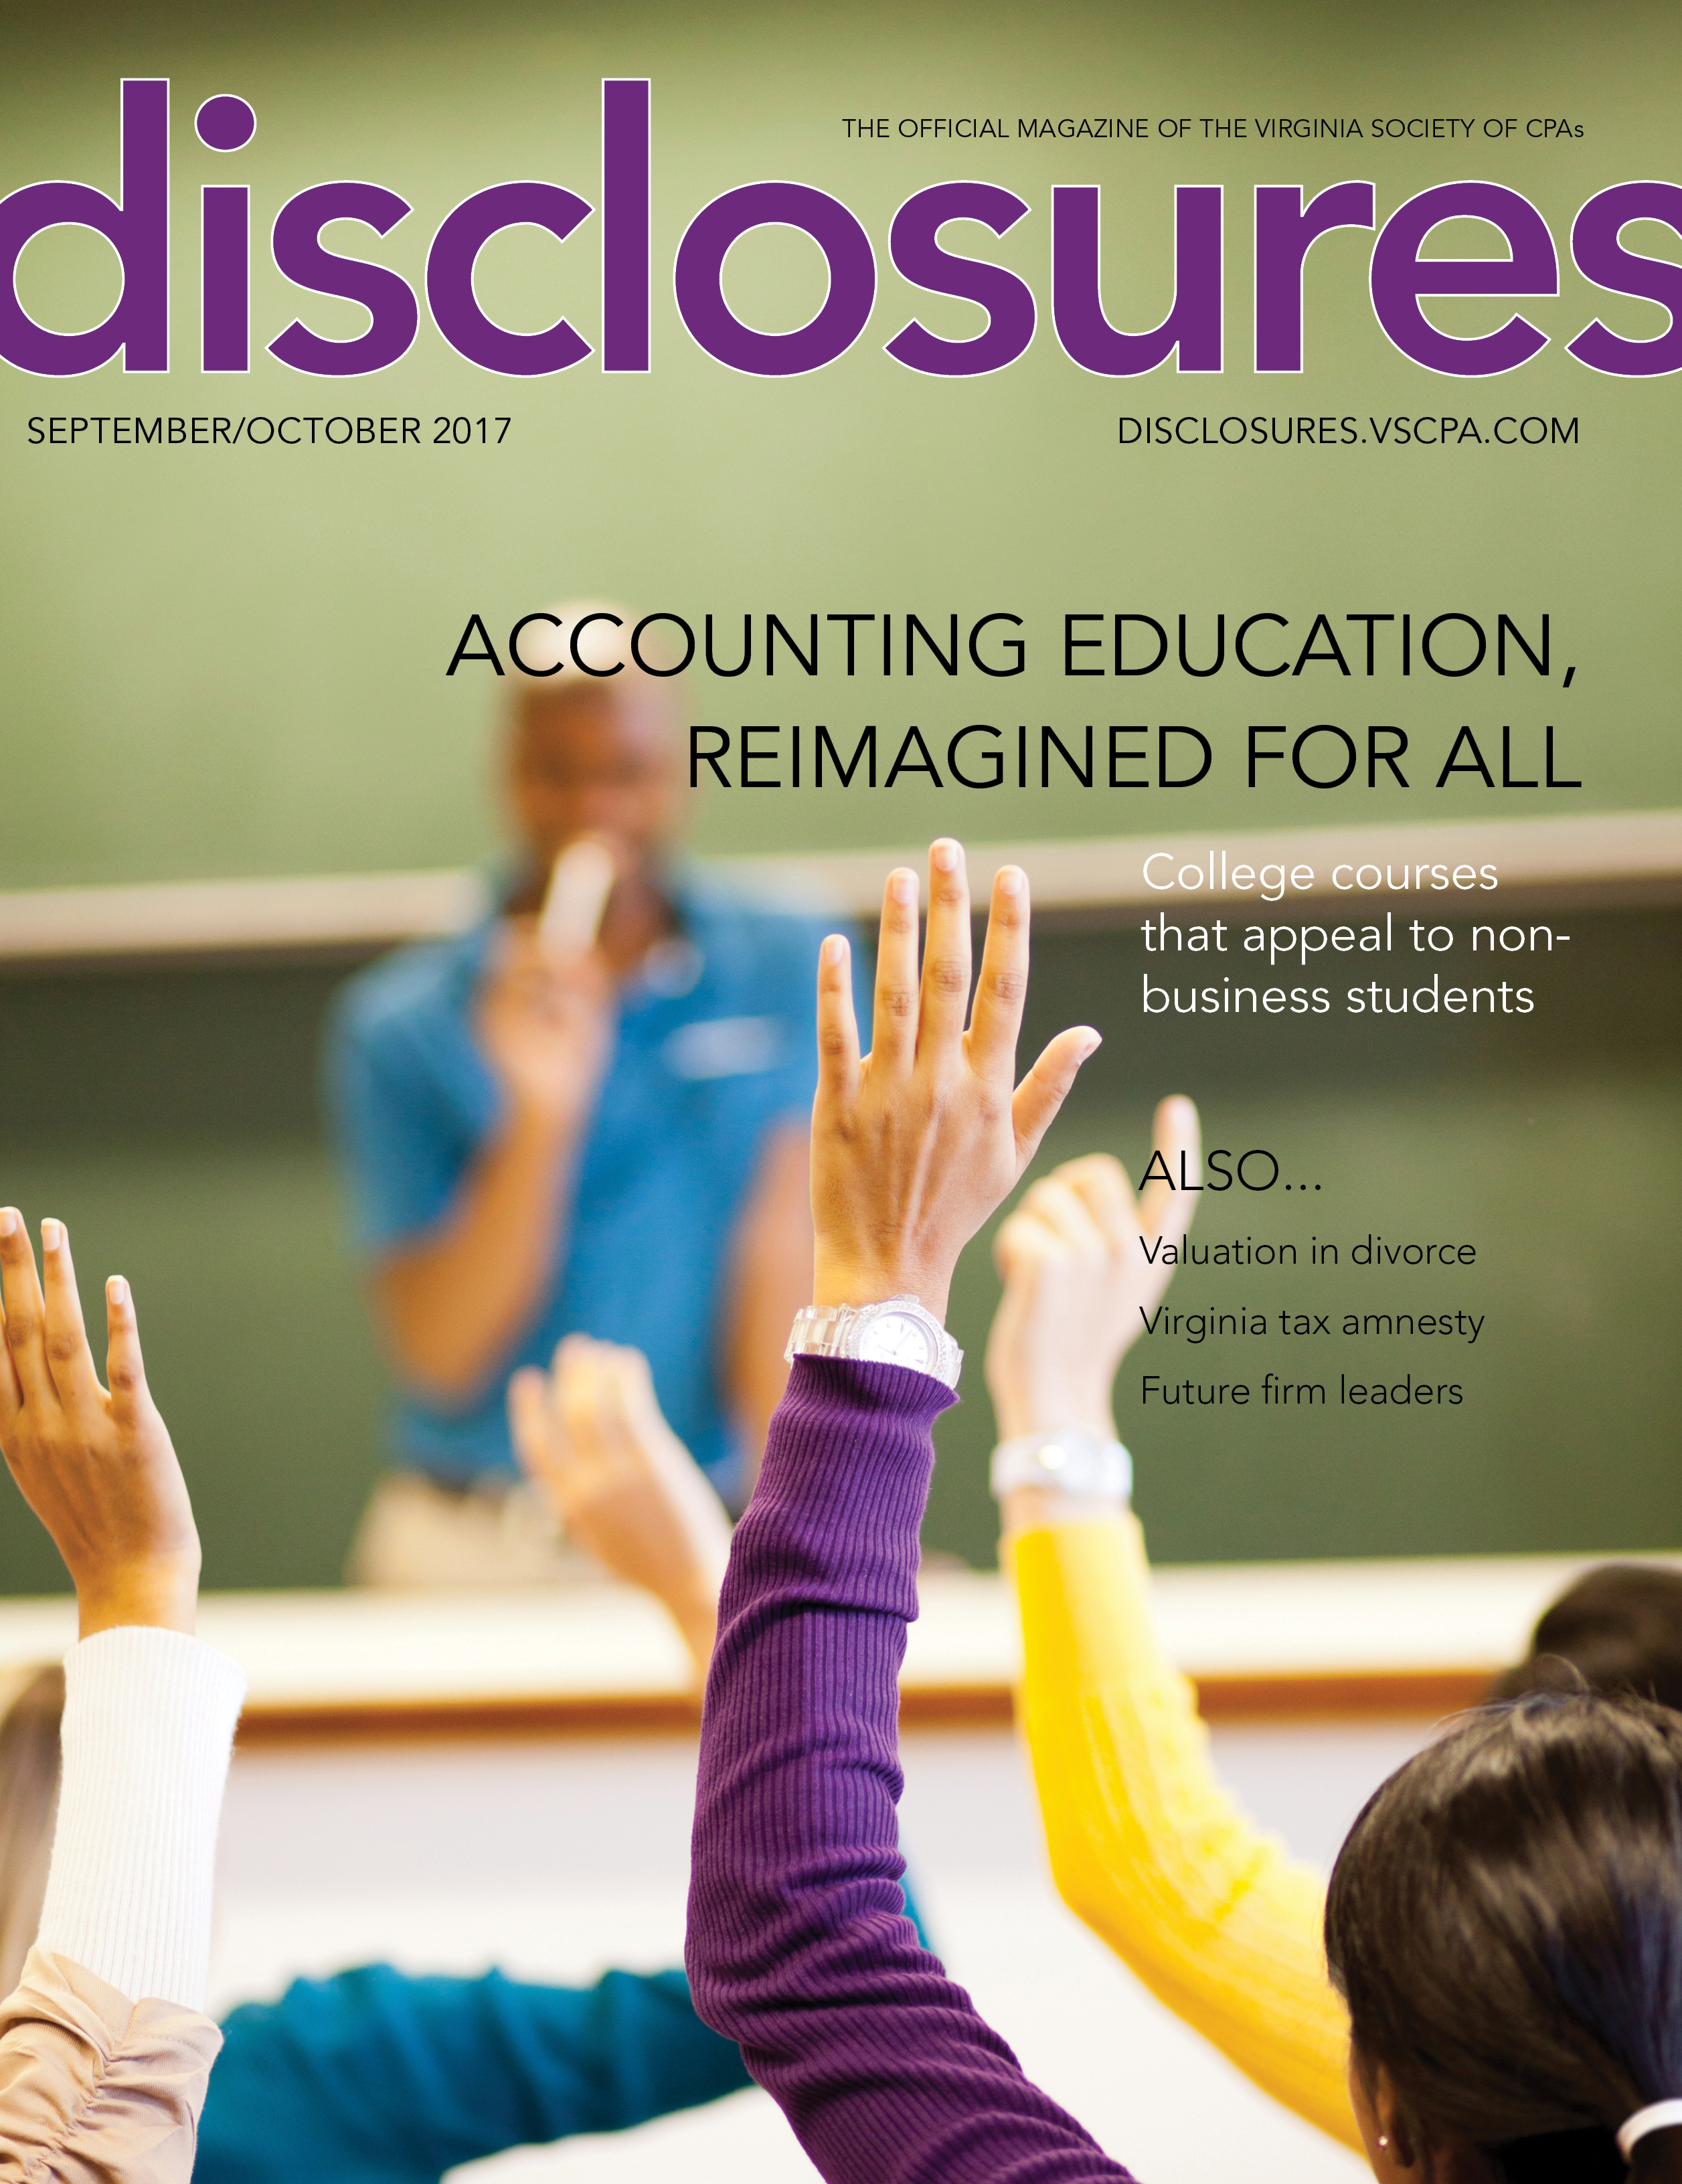 Cover of September/October 2017 issue of Disclosures